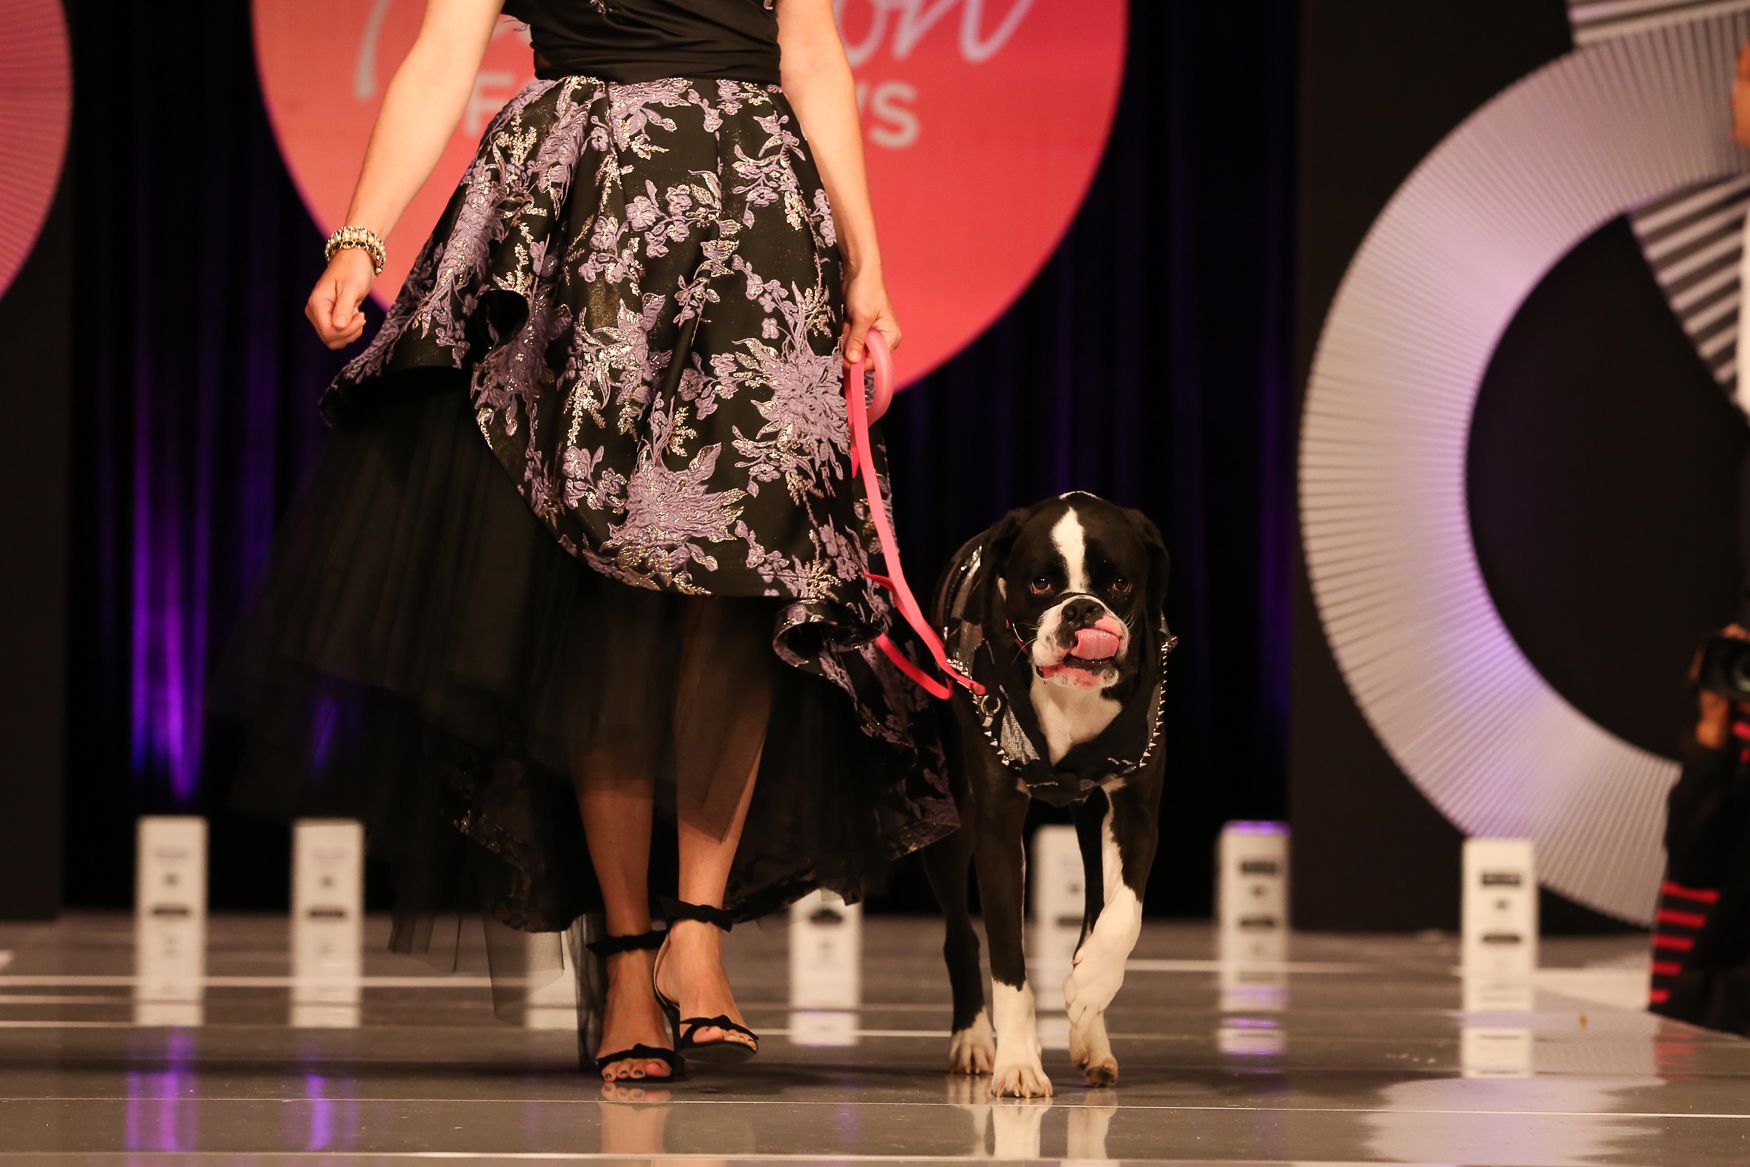 On May 5, animal lovers walking their dogs strutted down the runway of the Omni Shoreham Hotel to raise money for the Humane Rescue Alliance. The annual event honors the organization's top fundraisers and encourages others to give - this year, philanthropists raised over $365,000 for the animals. Dogs who are looking for forever homes were also featured on the runway, guided by HRA volunteers. (Amanda Andrade-Rhoades/DC Refined)